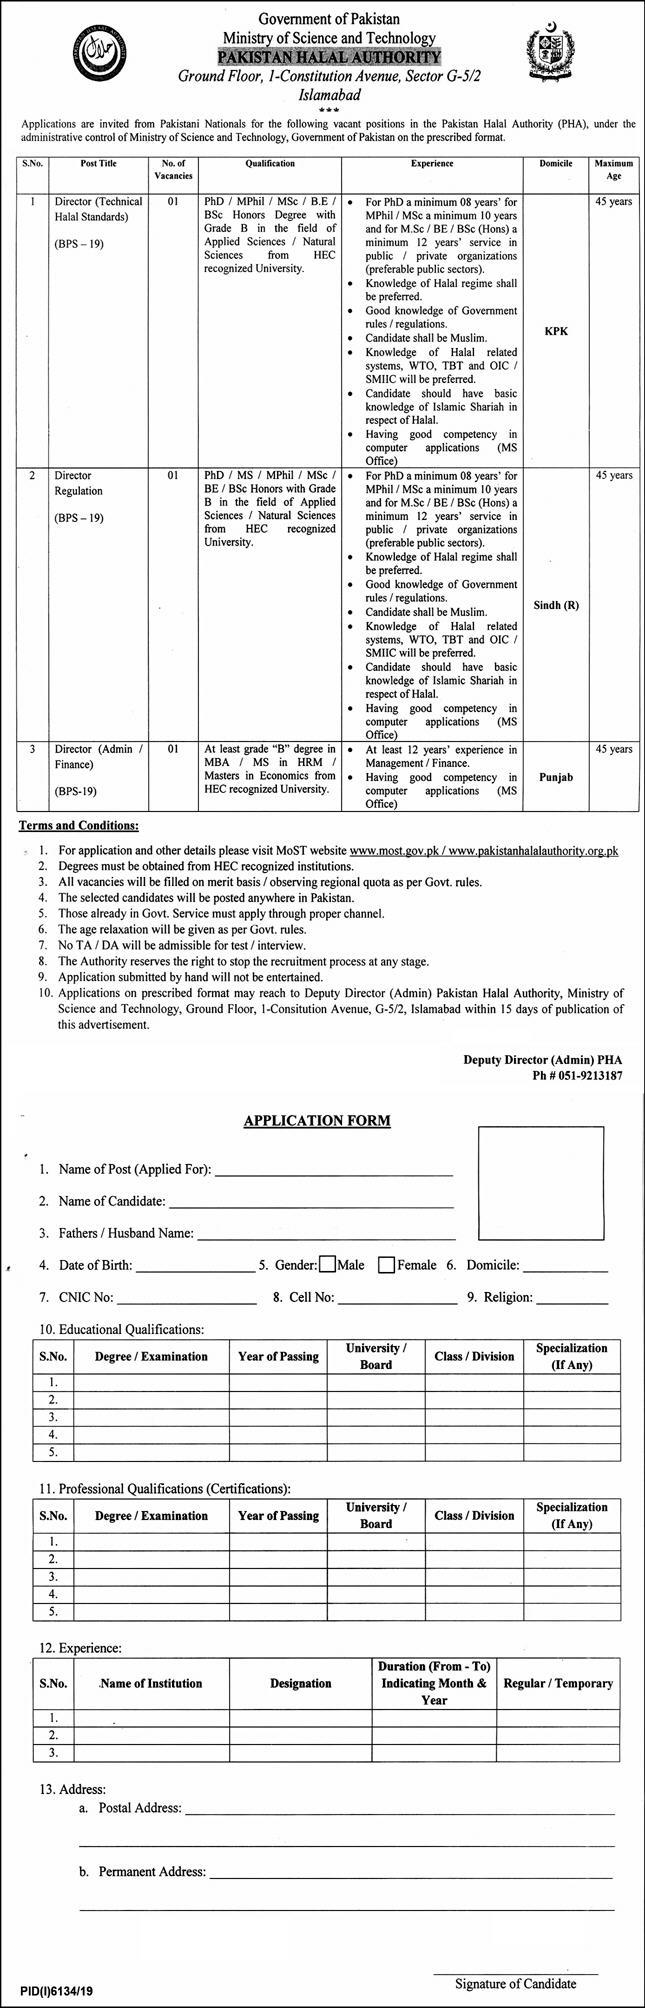 Ministry of Science and Technology Jobs 2020